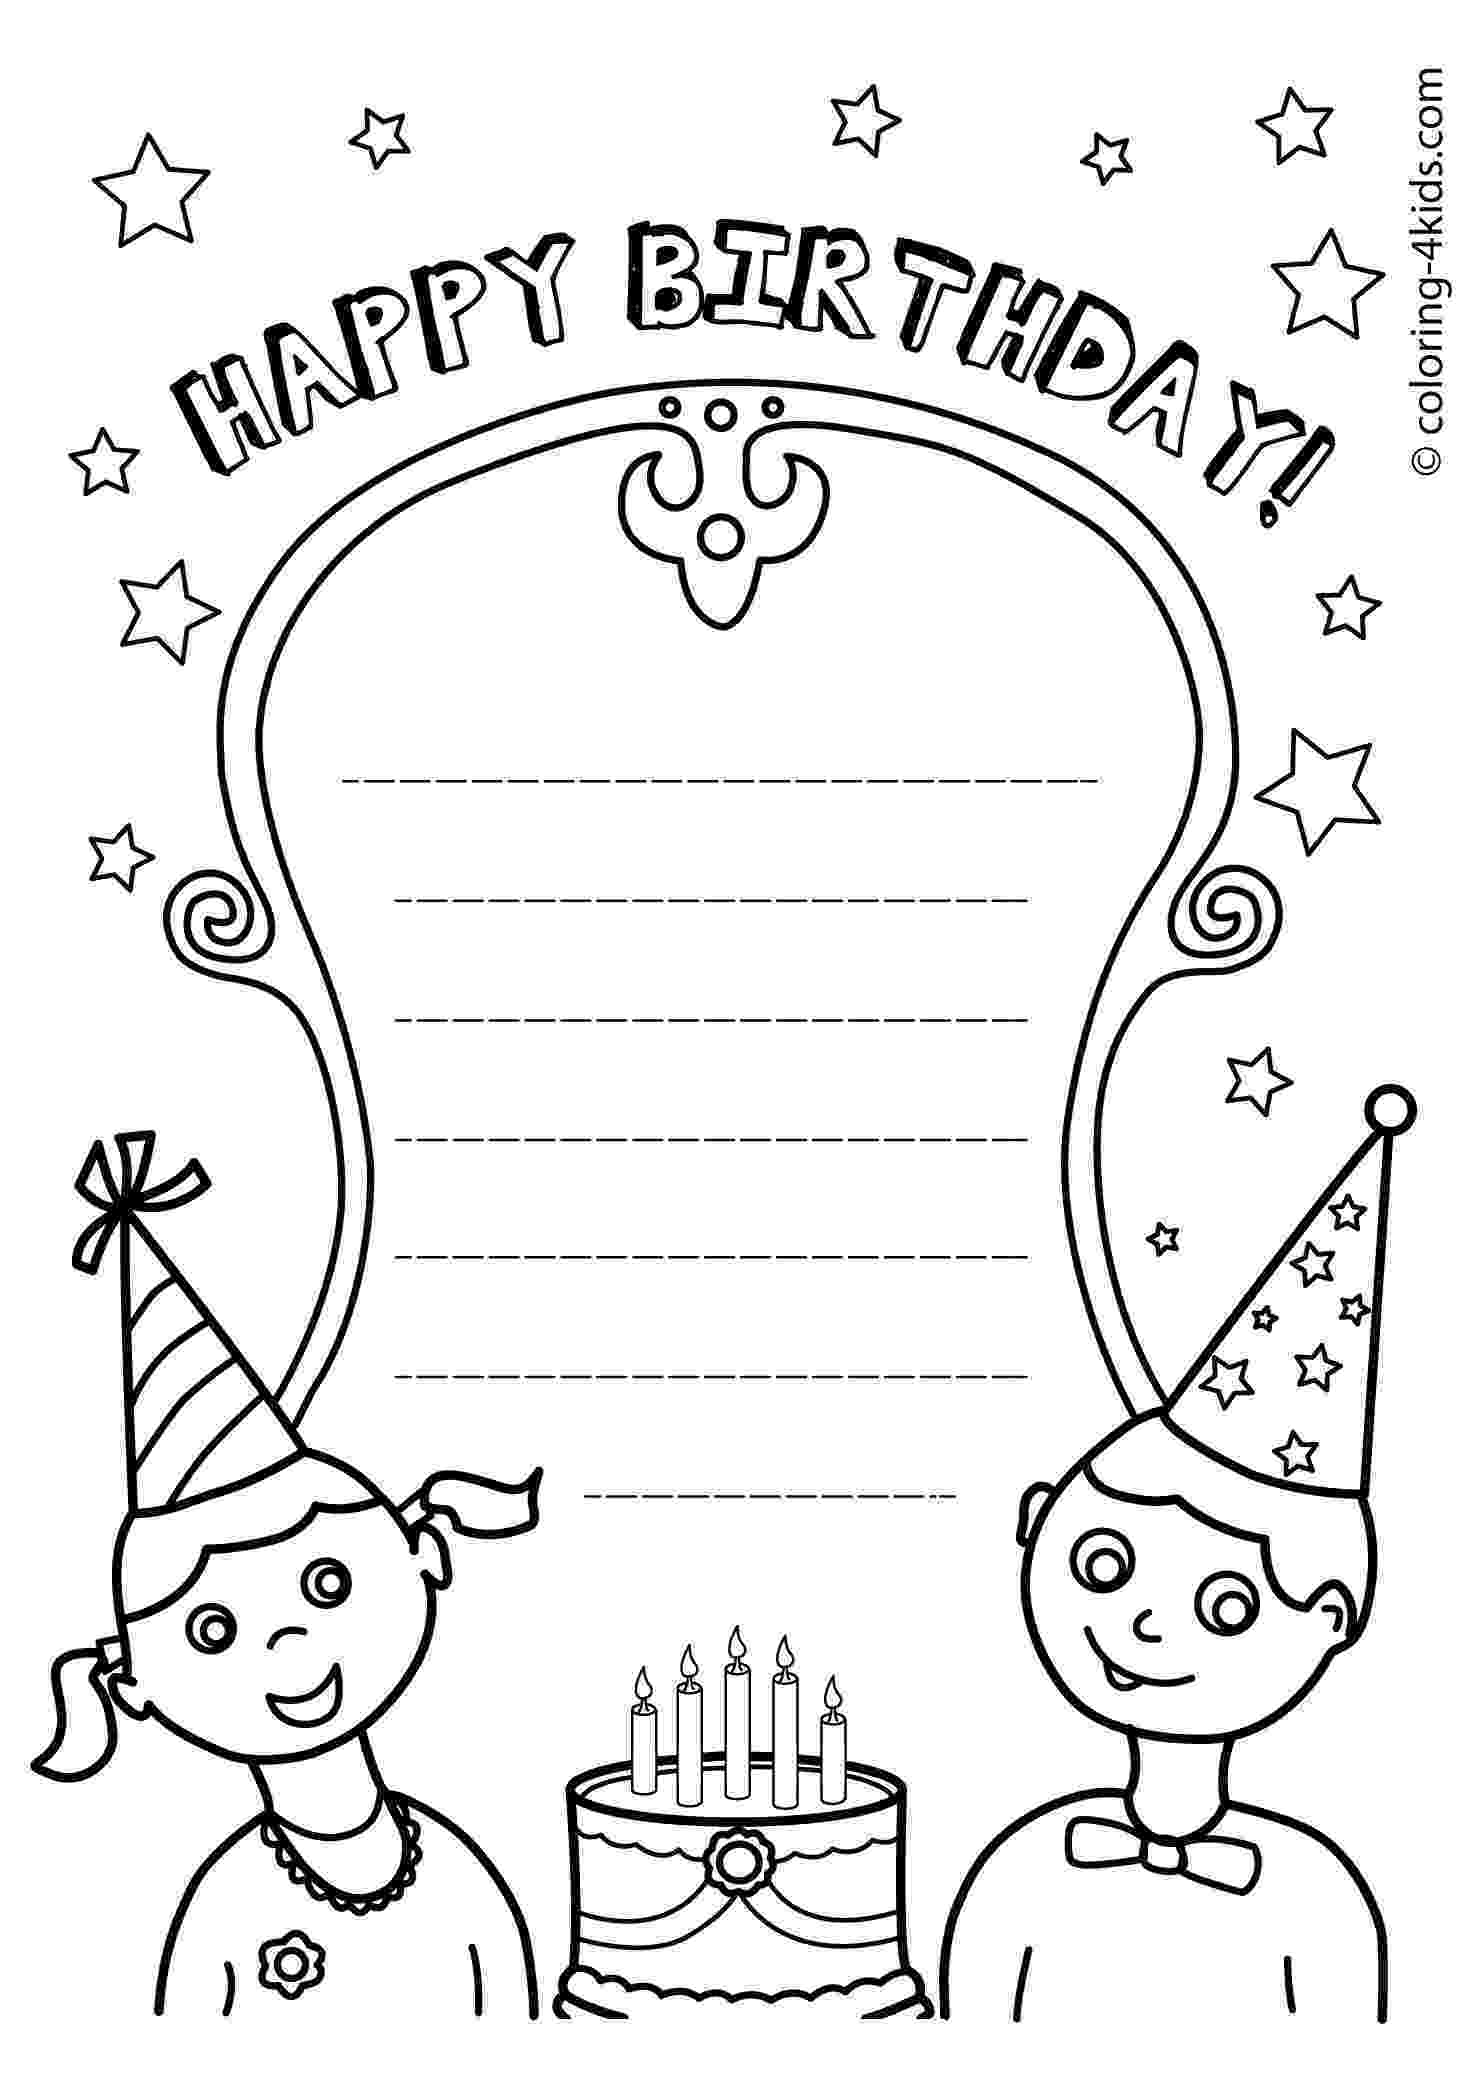 birthday card coloring page free printable birthday cards the organised housewife page card coloring birthday